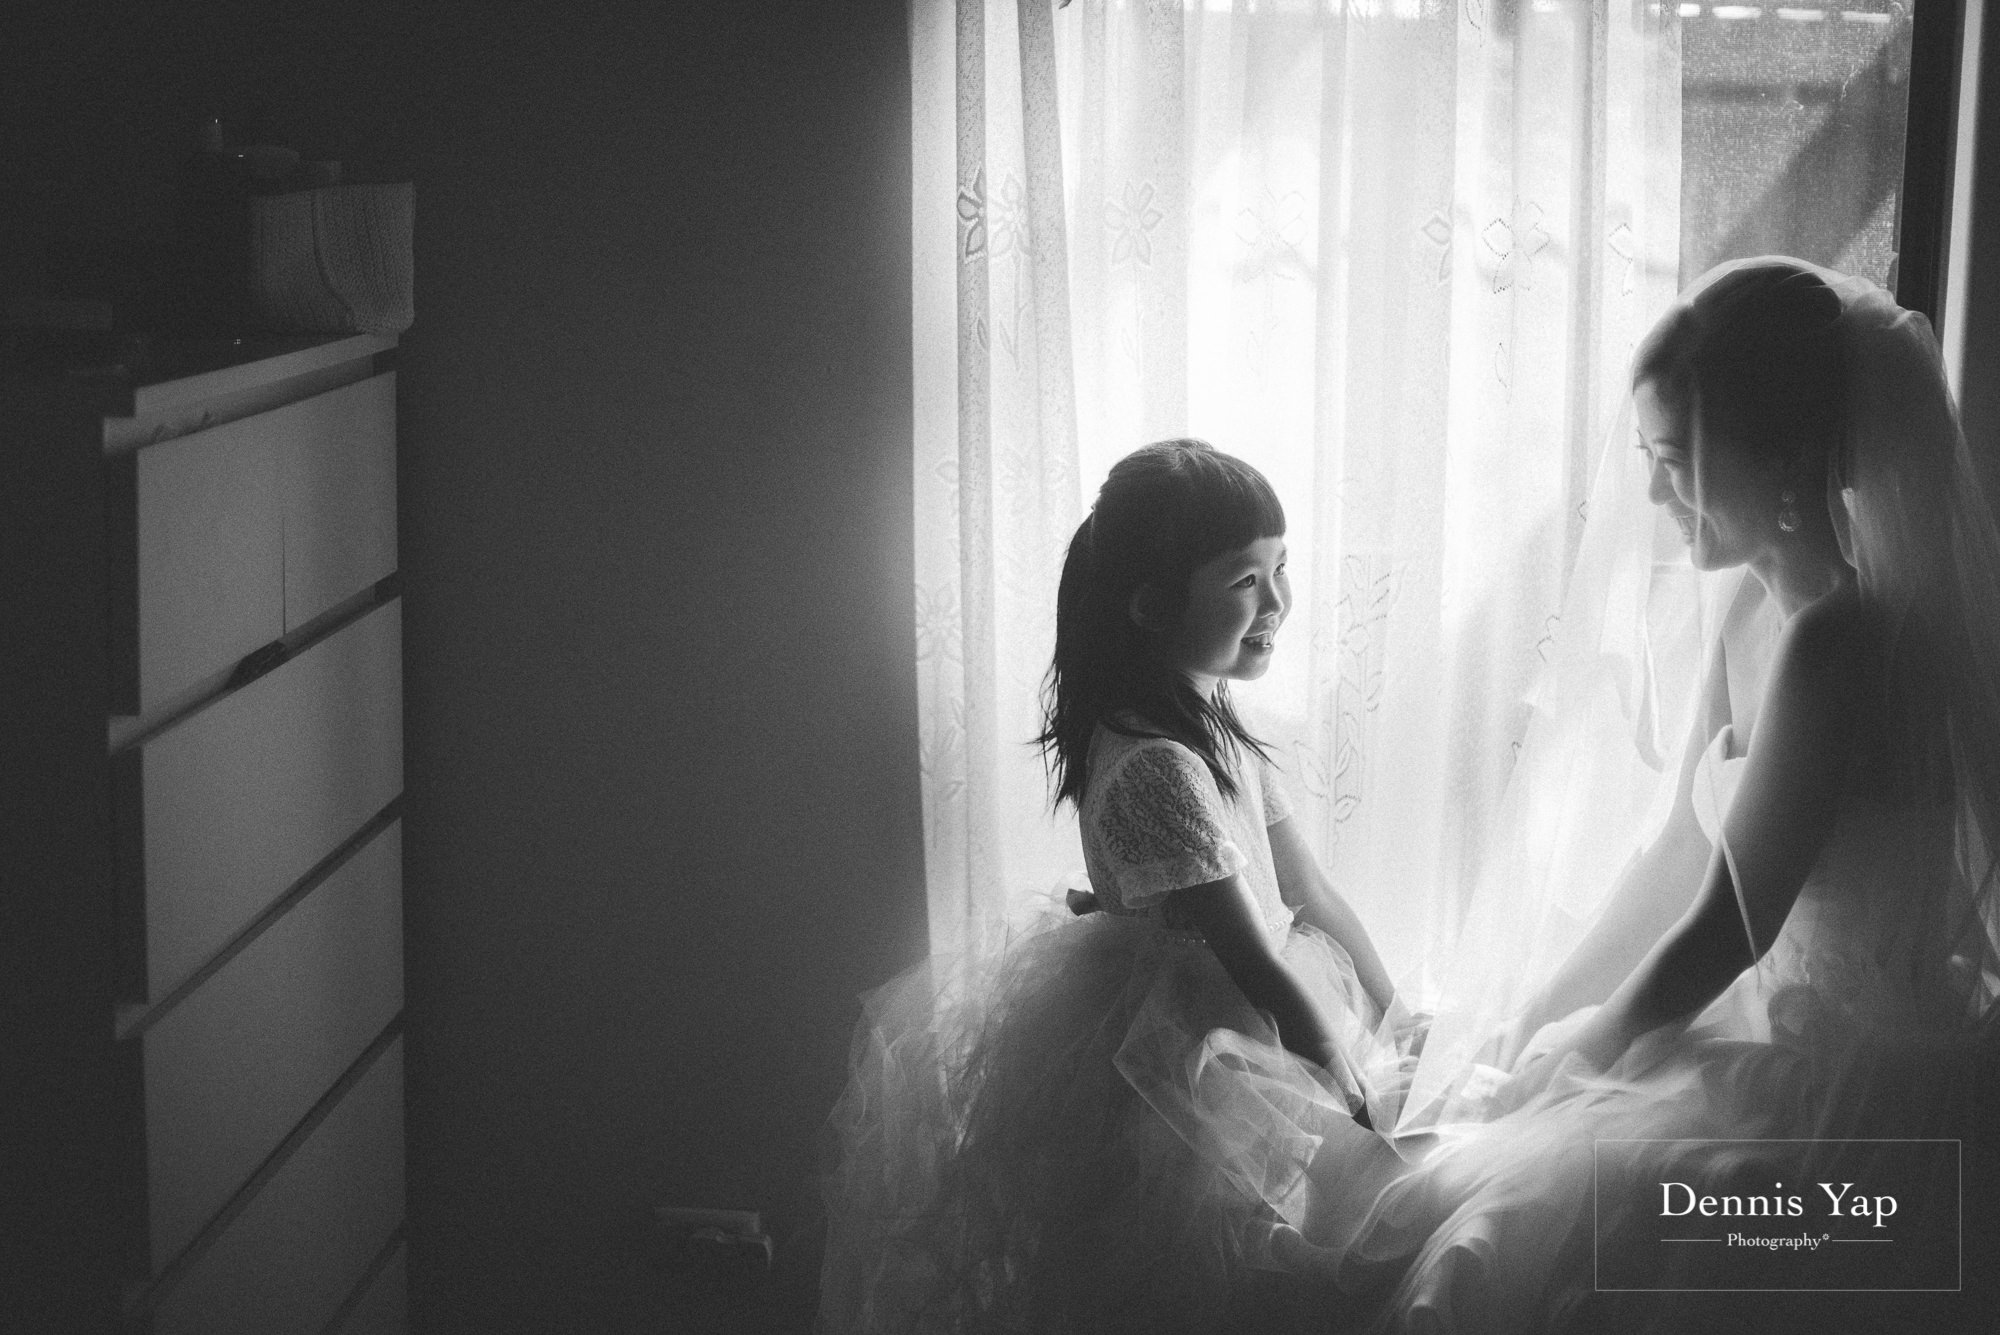 ethan janet perth wedding reception and garden ceremony in lamonts dennis yap photography-10.jpg